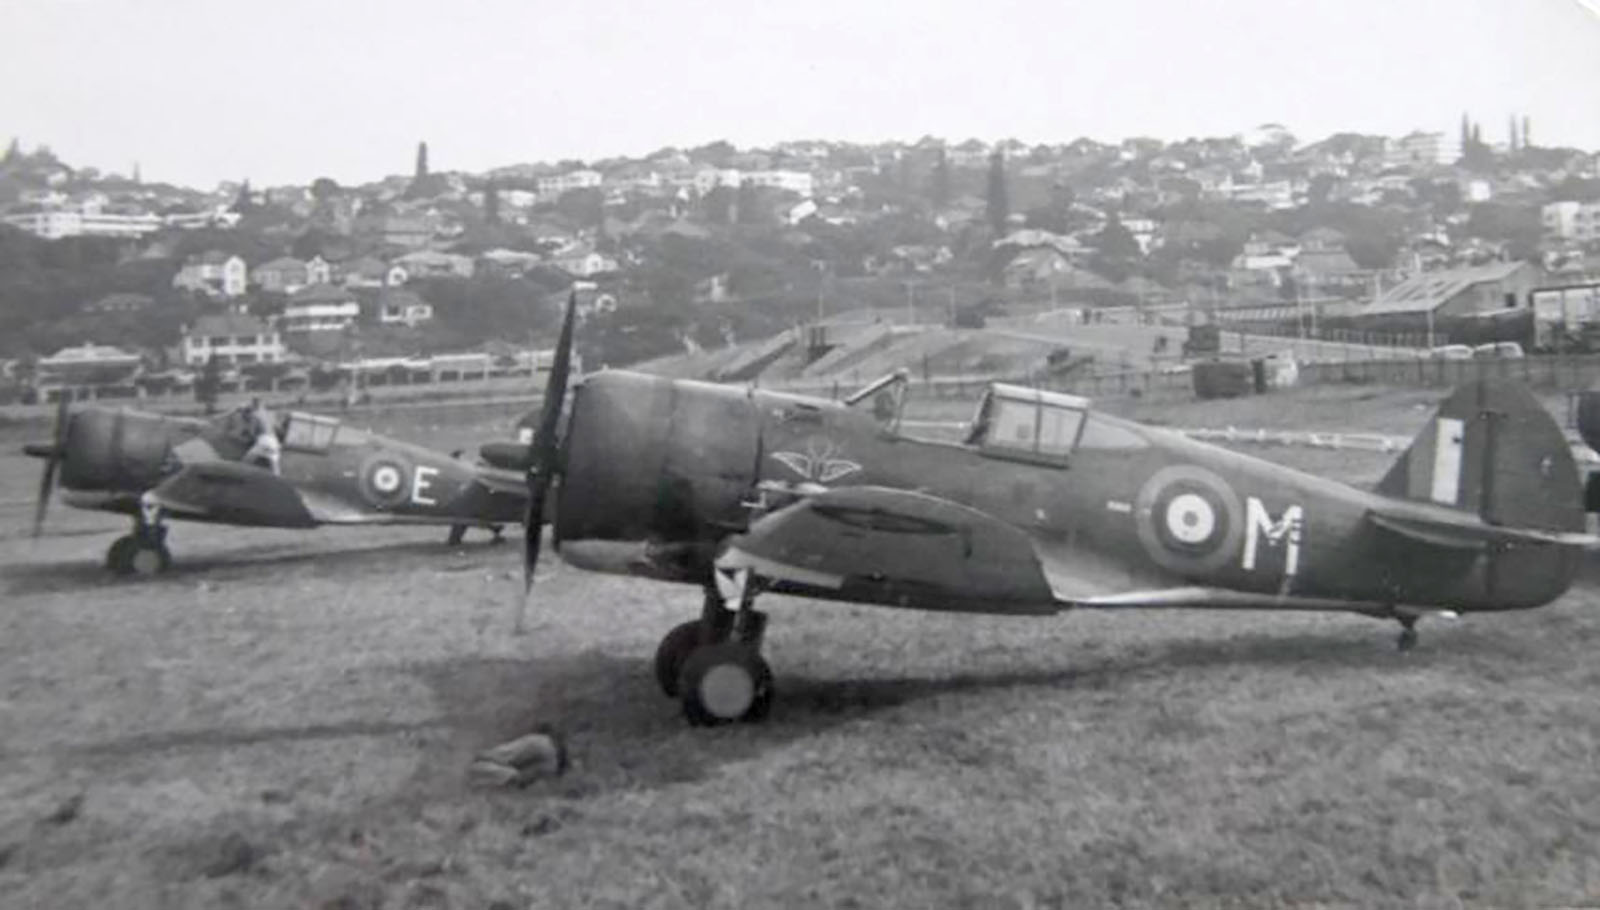 Mohawk IV SAAF 6Sqn White E and M Durban South Africa April 1942 01